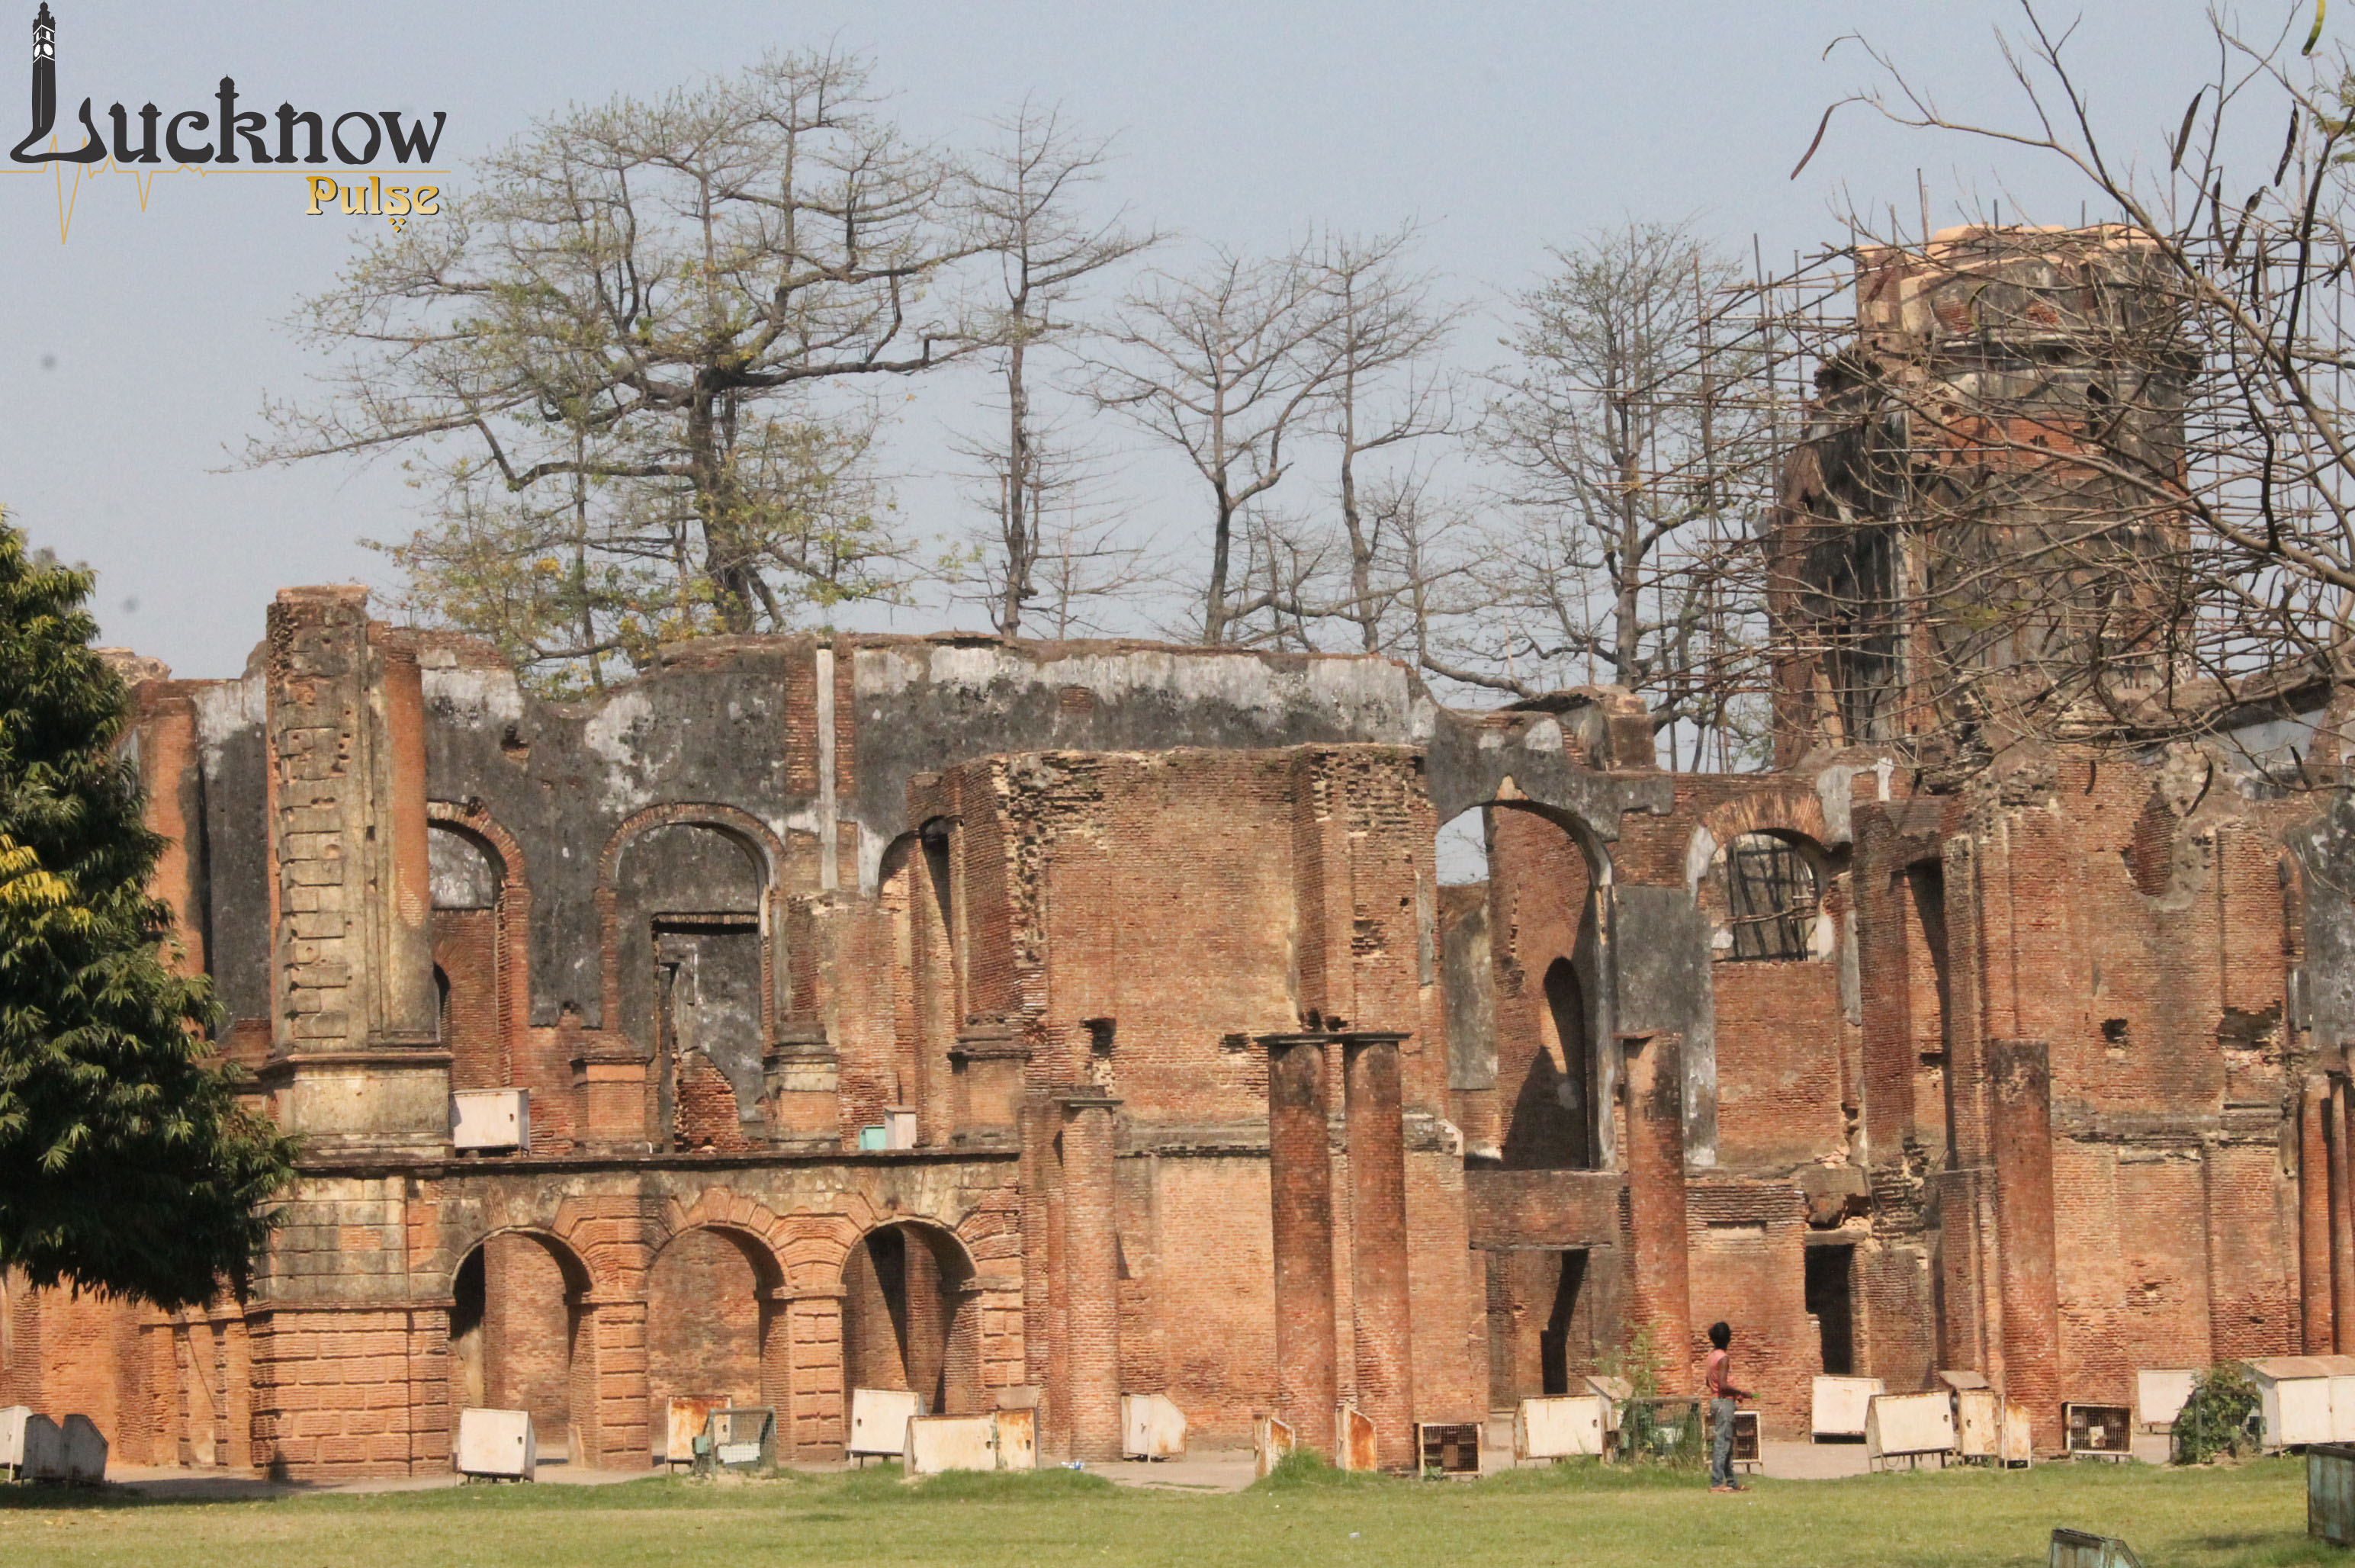 Residency Lucknow, British Residency in Lucknow – Witness to the Mutiny of 1857 ...